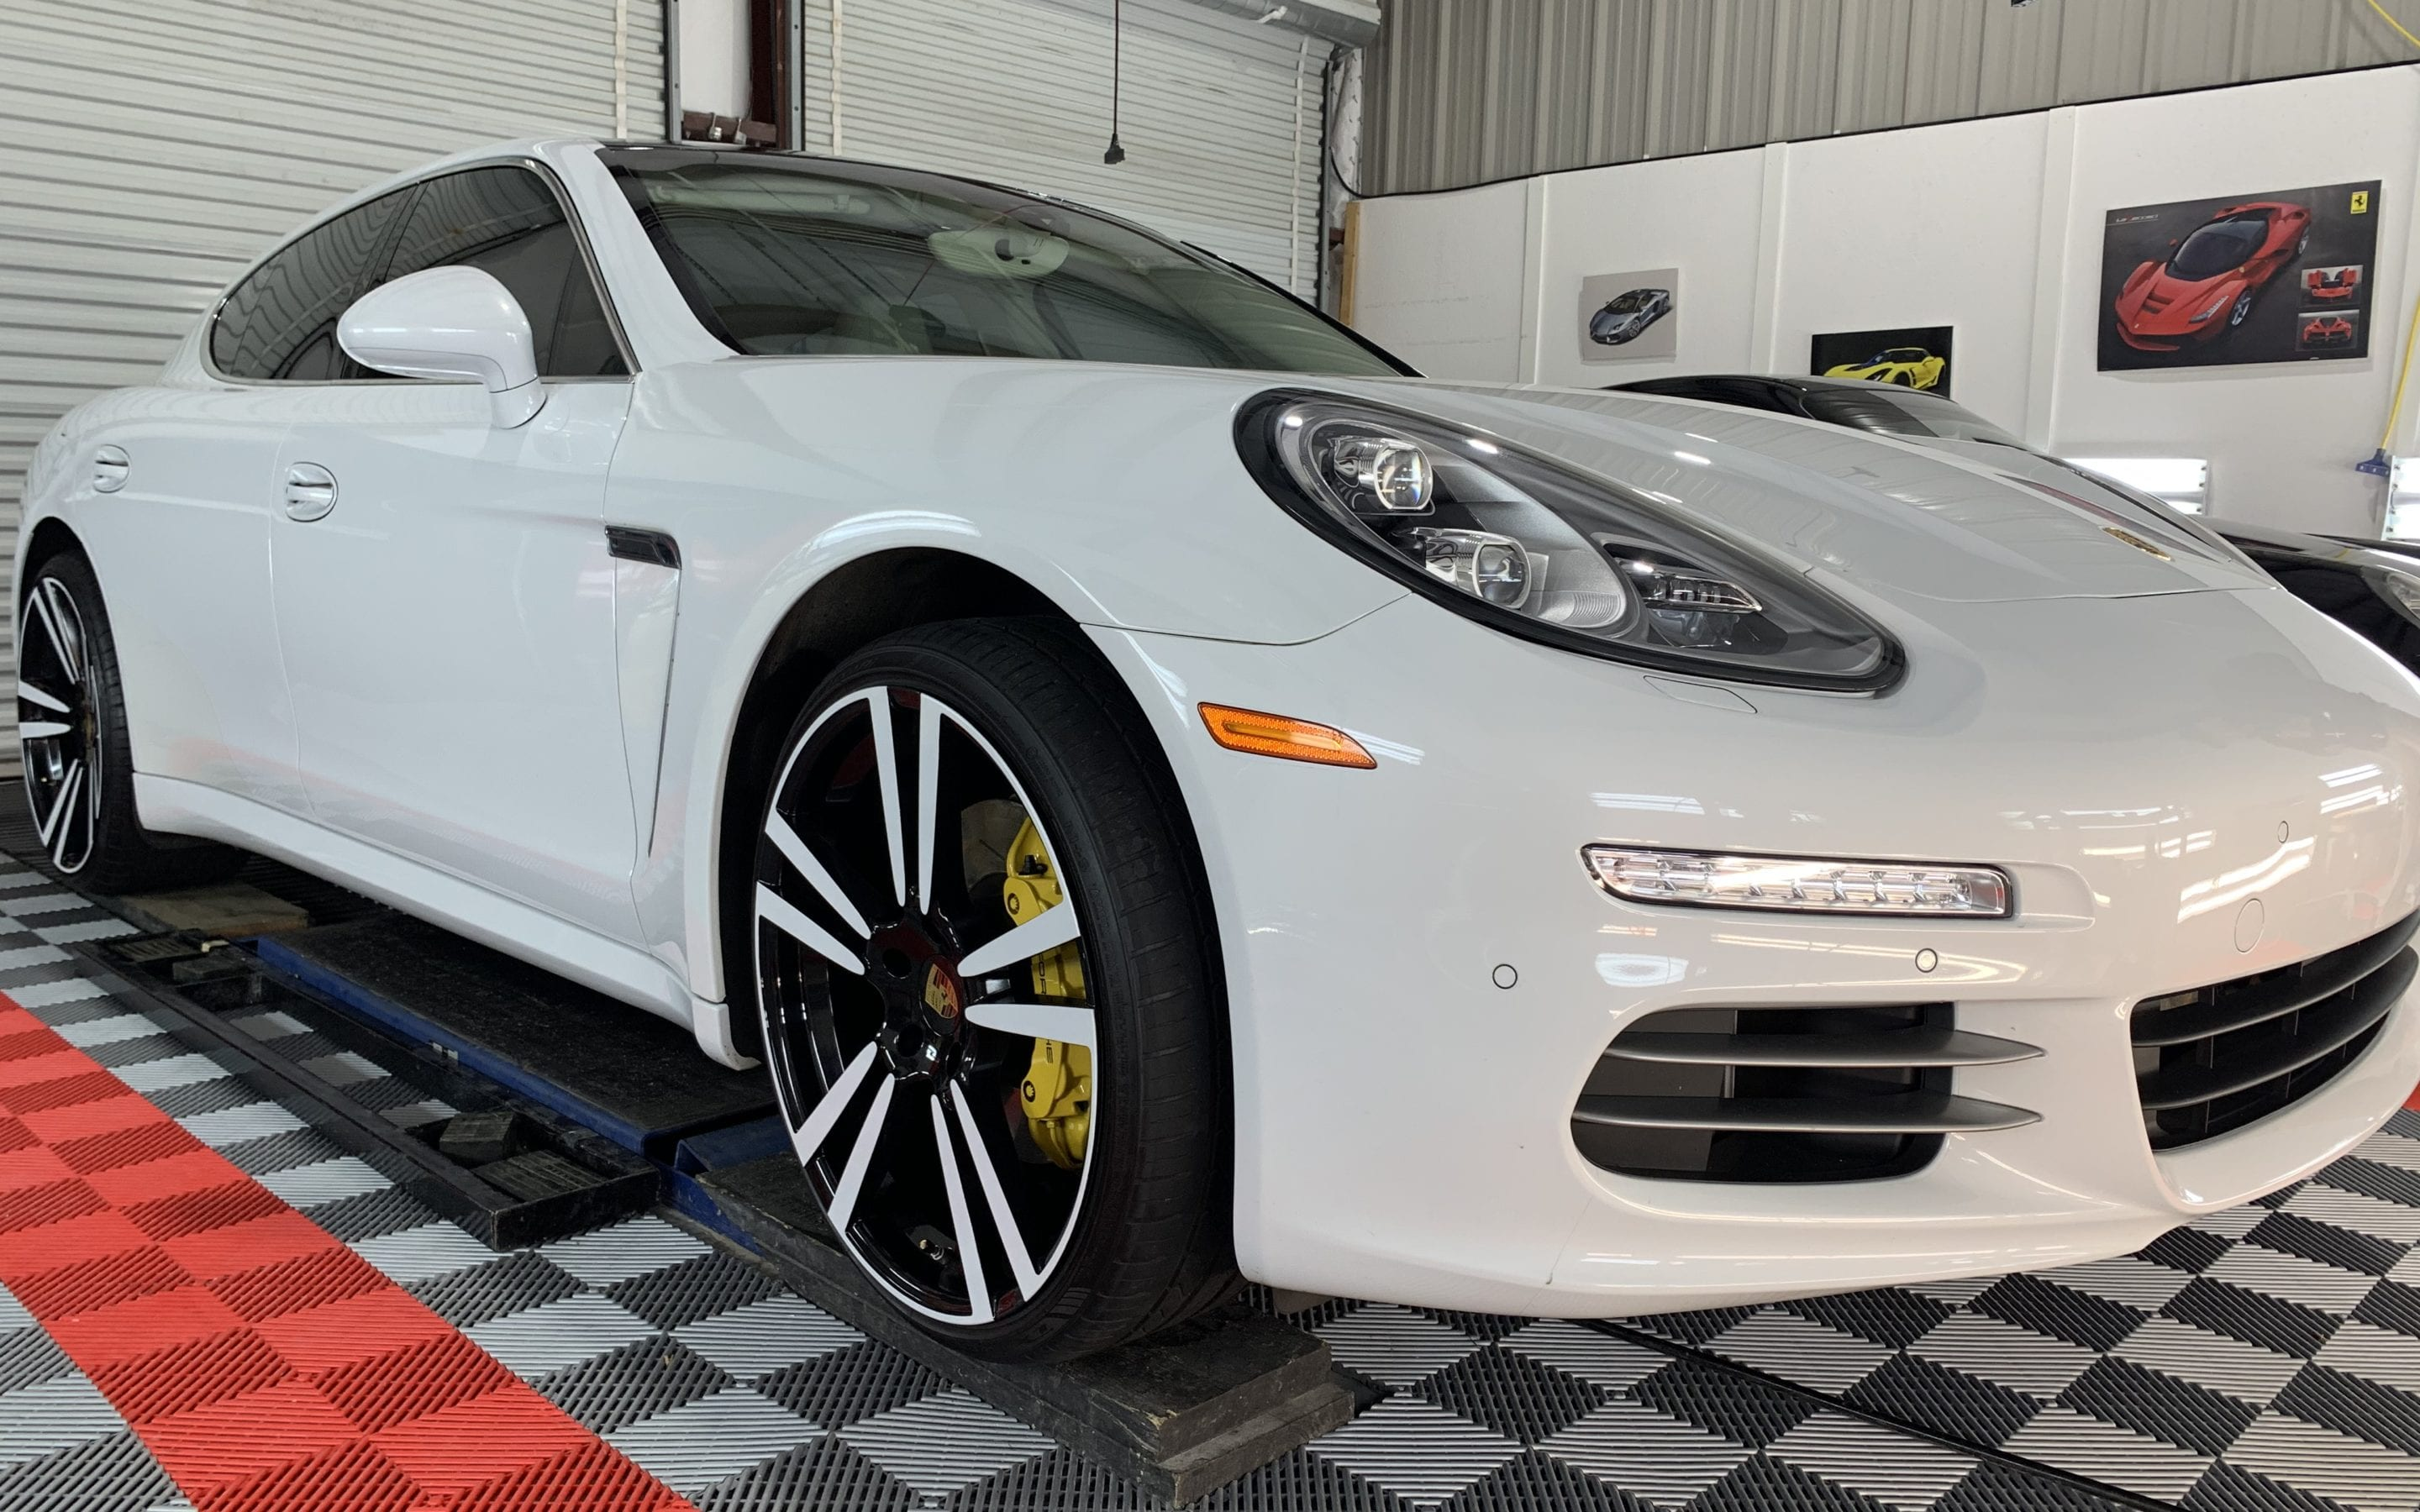 Ceramic Coating of a 2016 Porsche Panamera